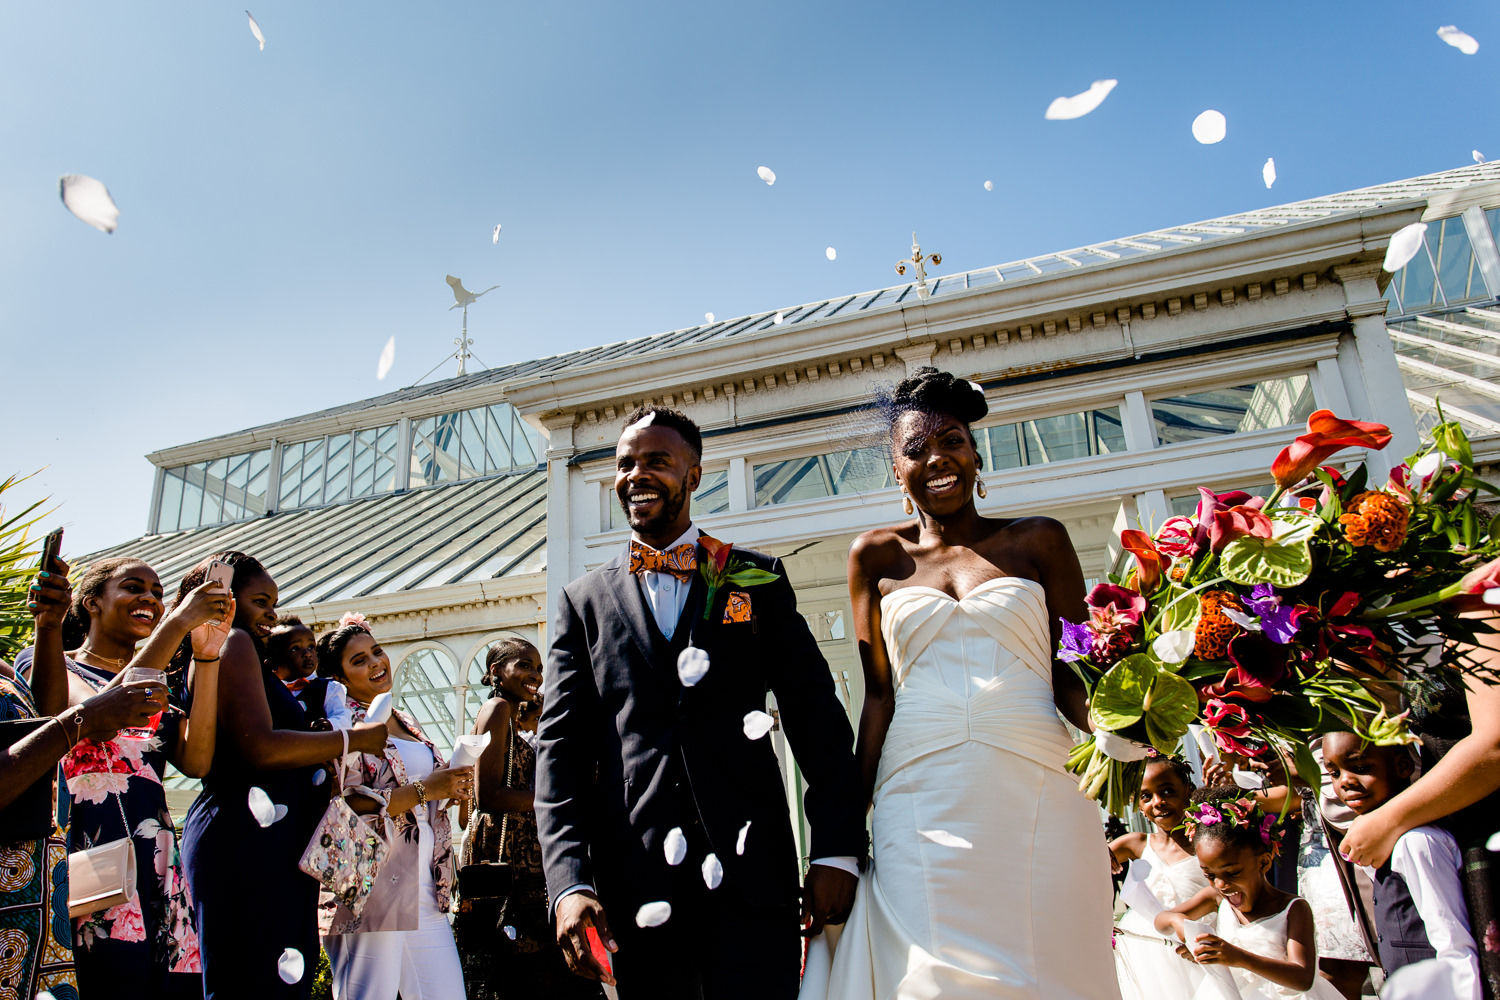 Bride and groom confetti shot outside The Isla Gladstone on a sunny wedding day at a Liverpool wedding.